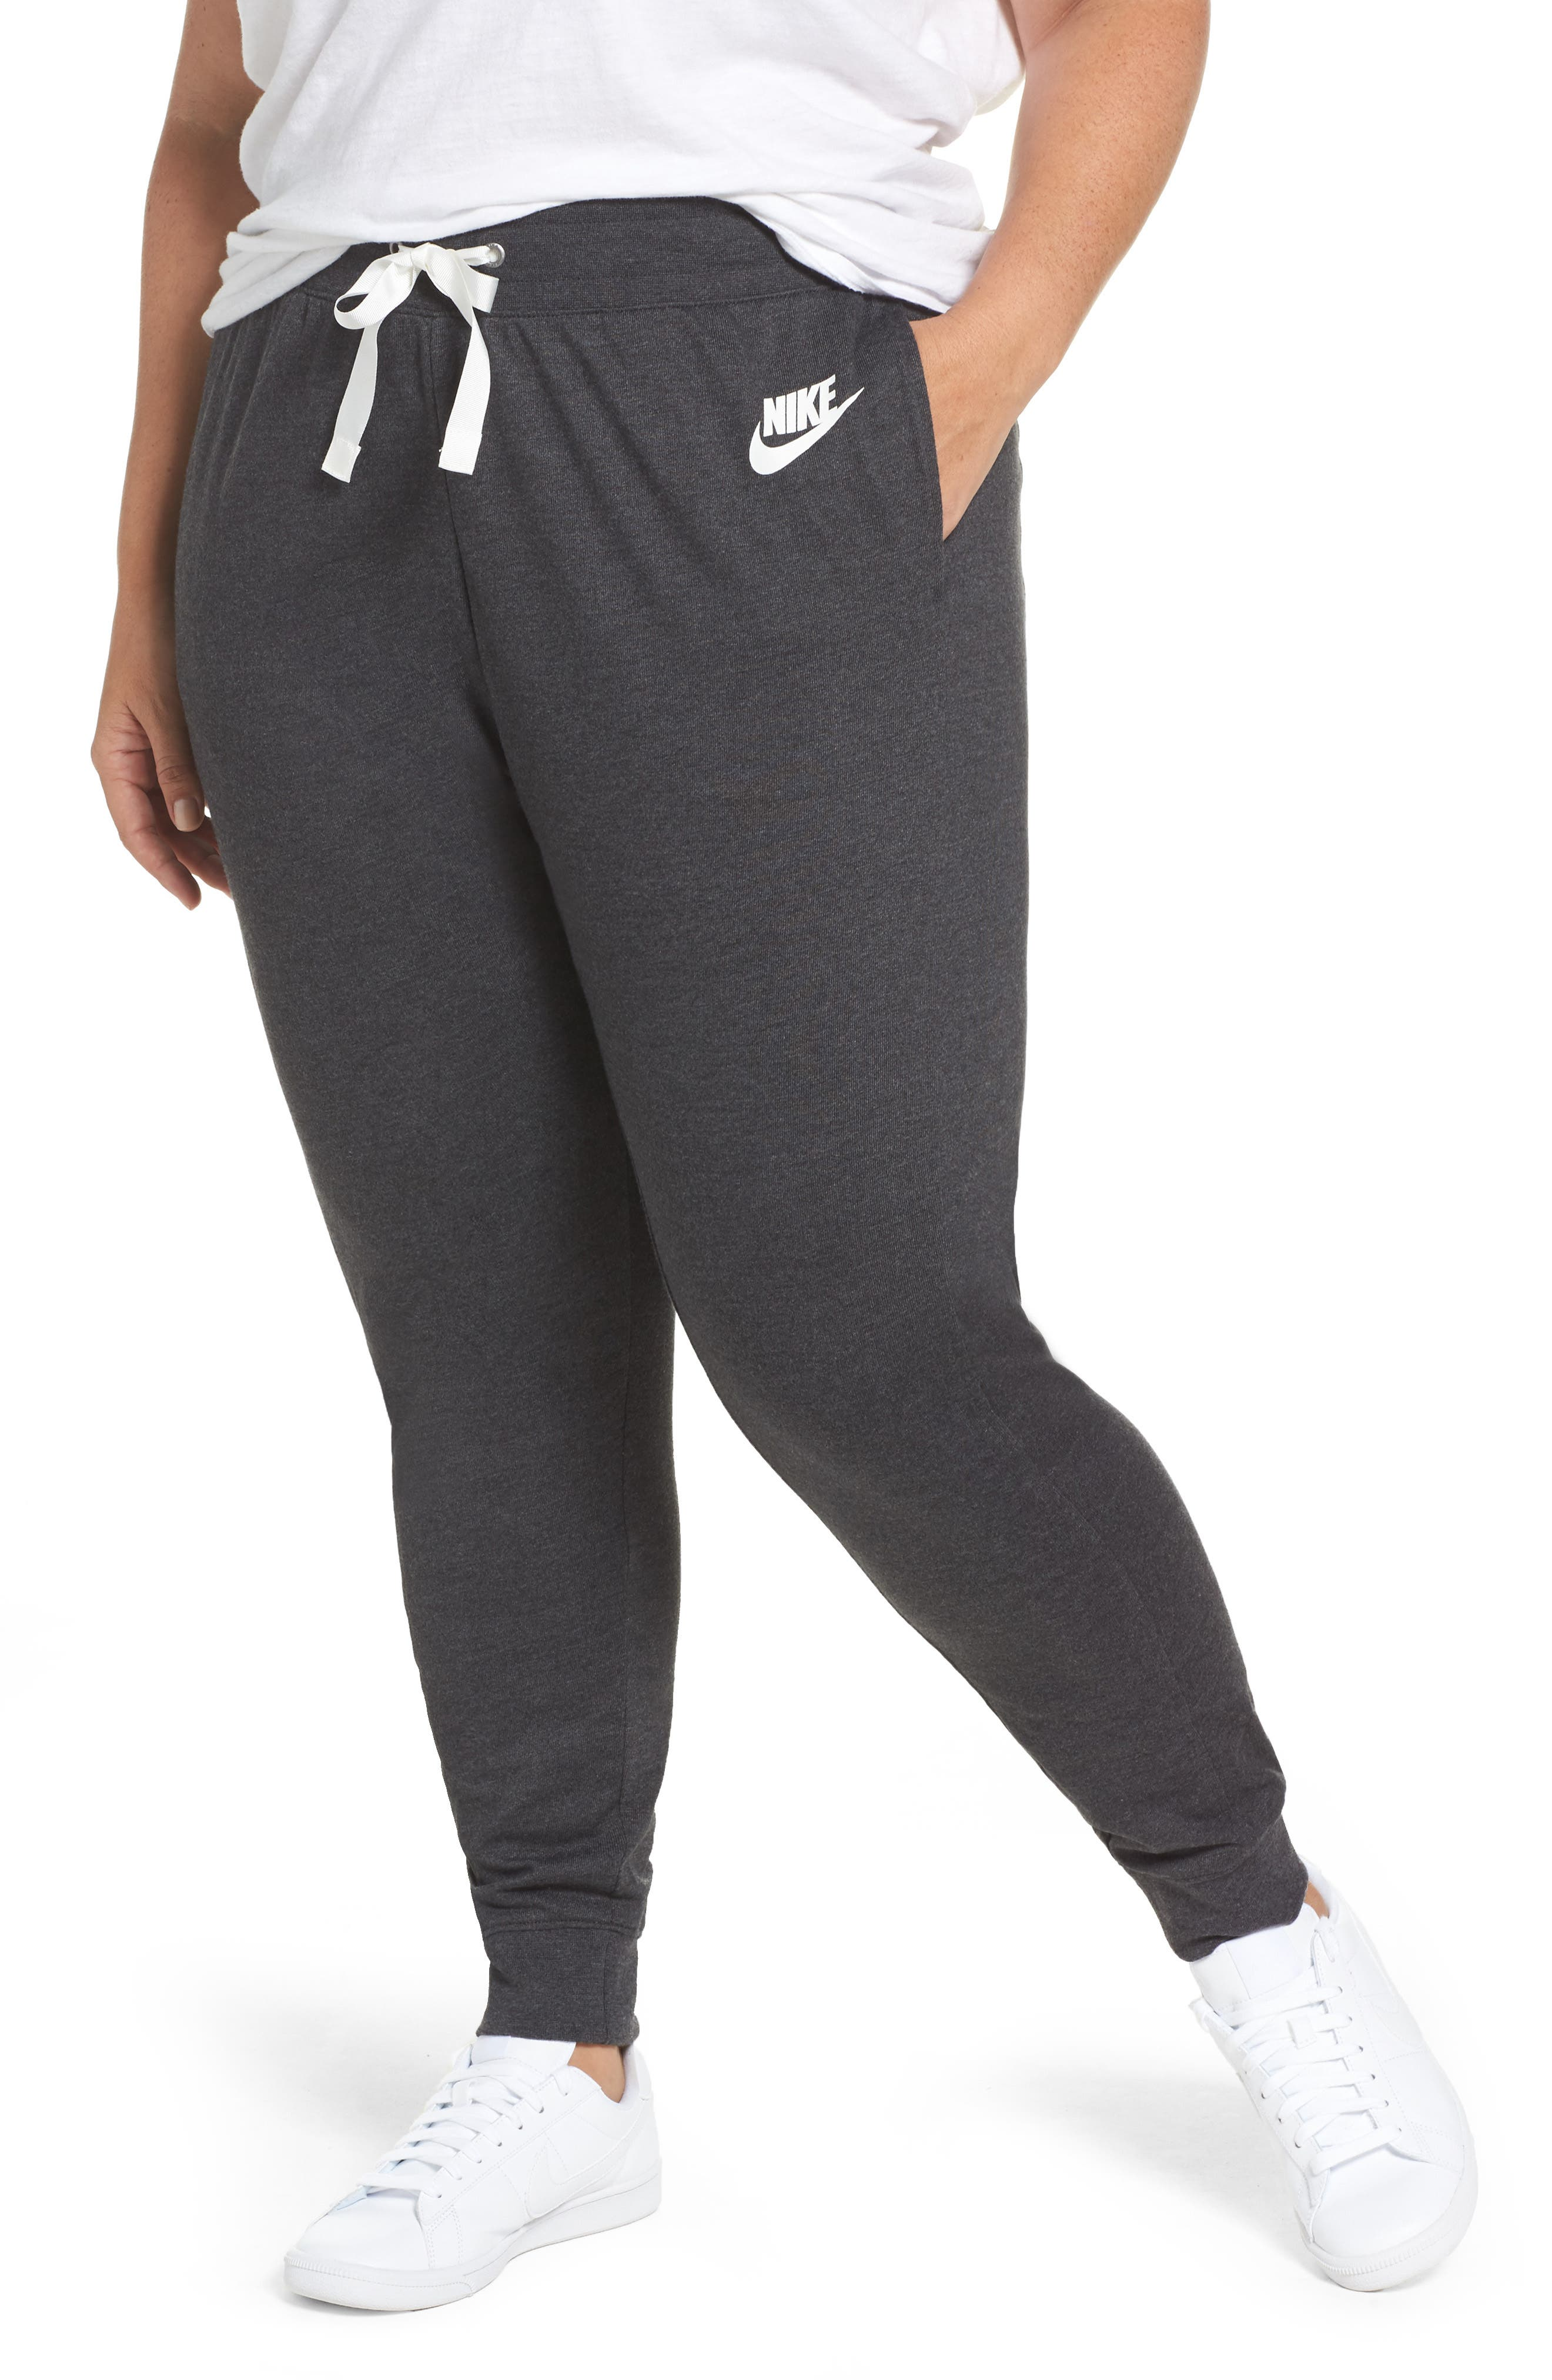 Sportswear Gym Classic Pants,                         Main,                         color, Black Heather/ Sail